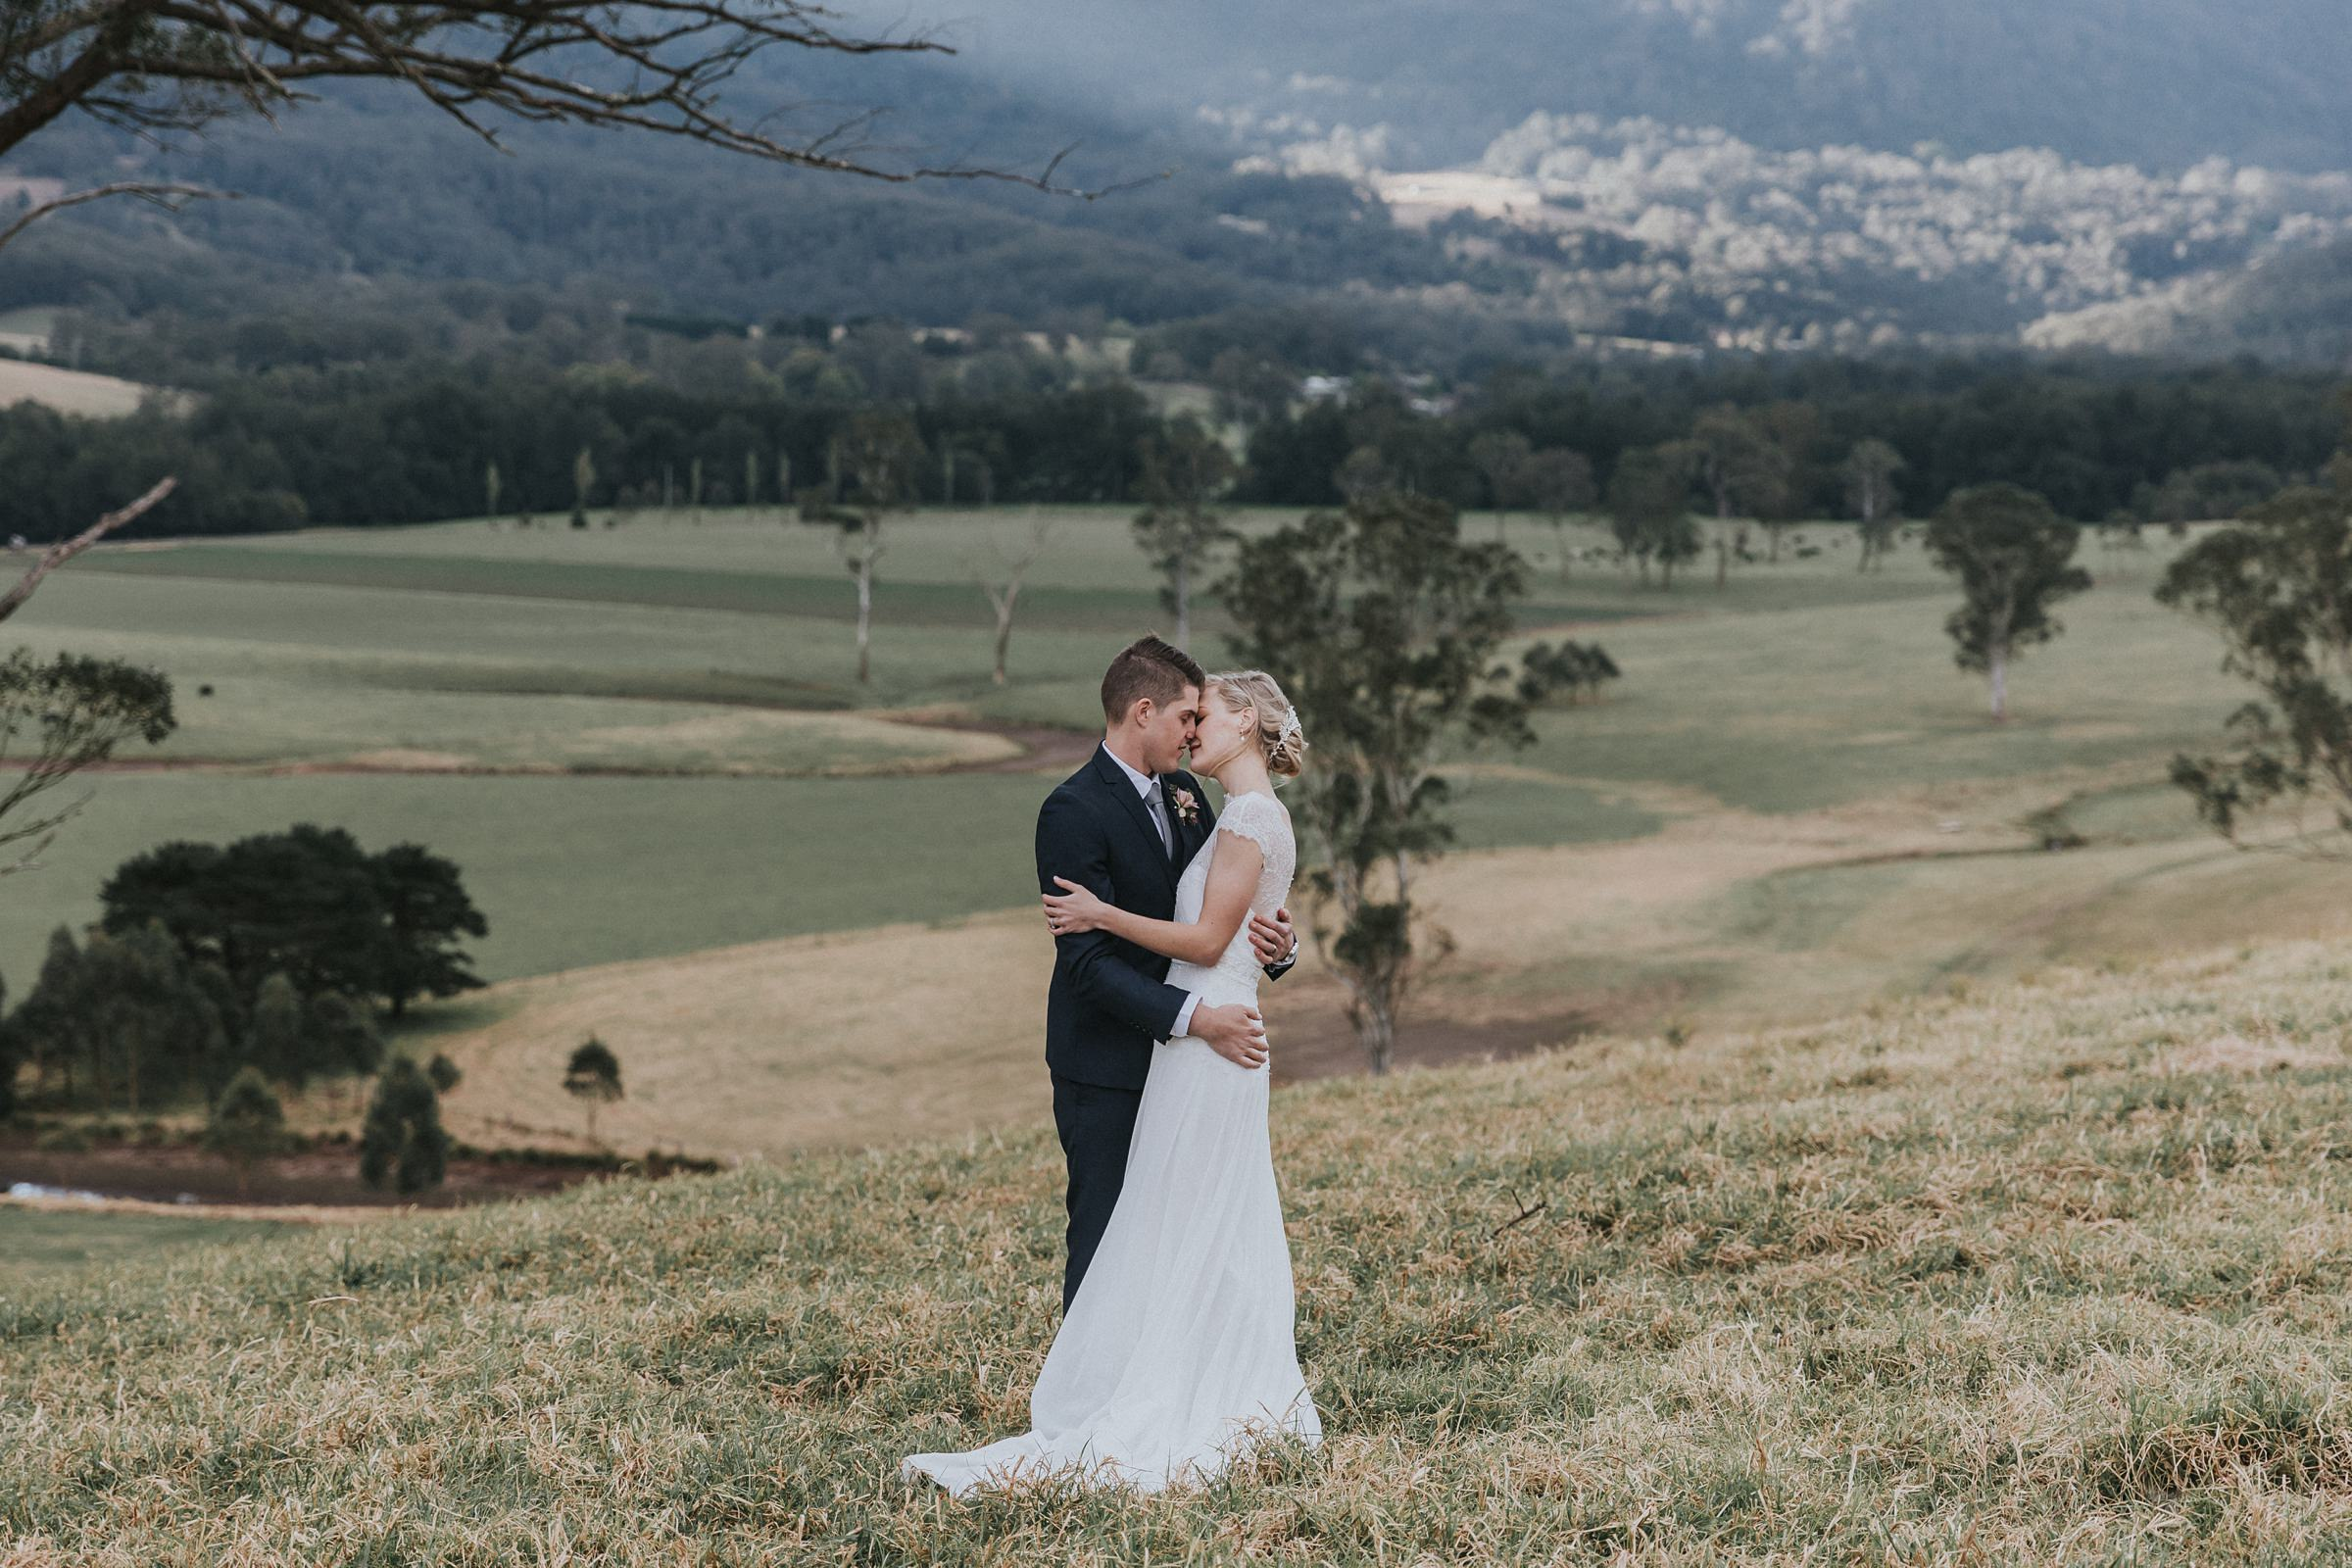 melross farm wedding in kangaroo valley